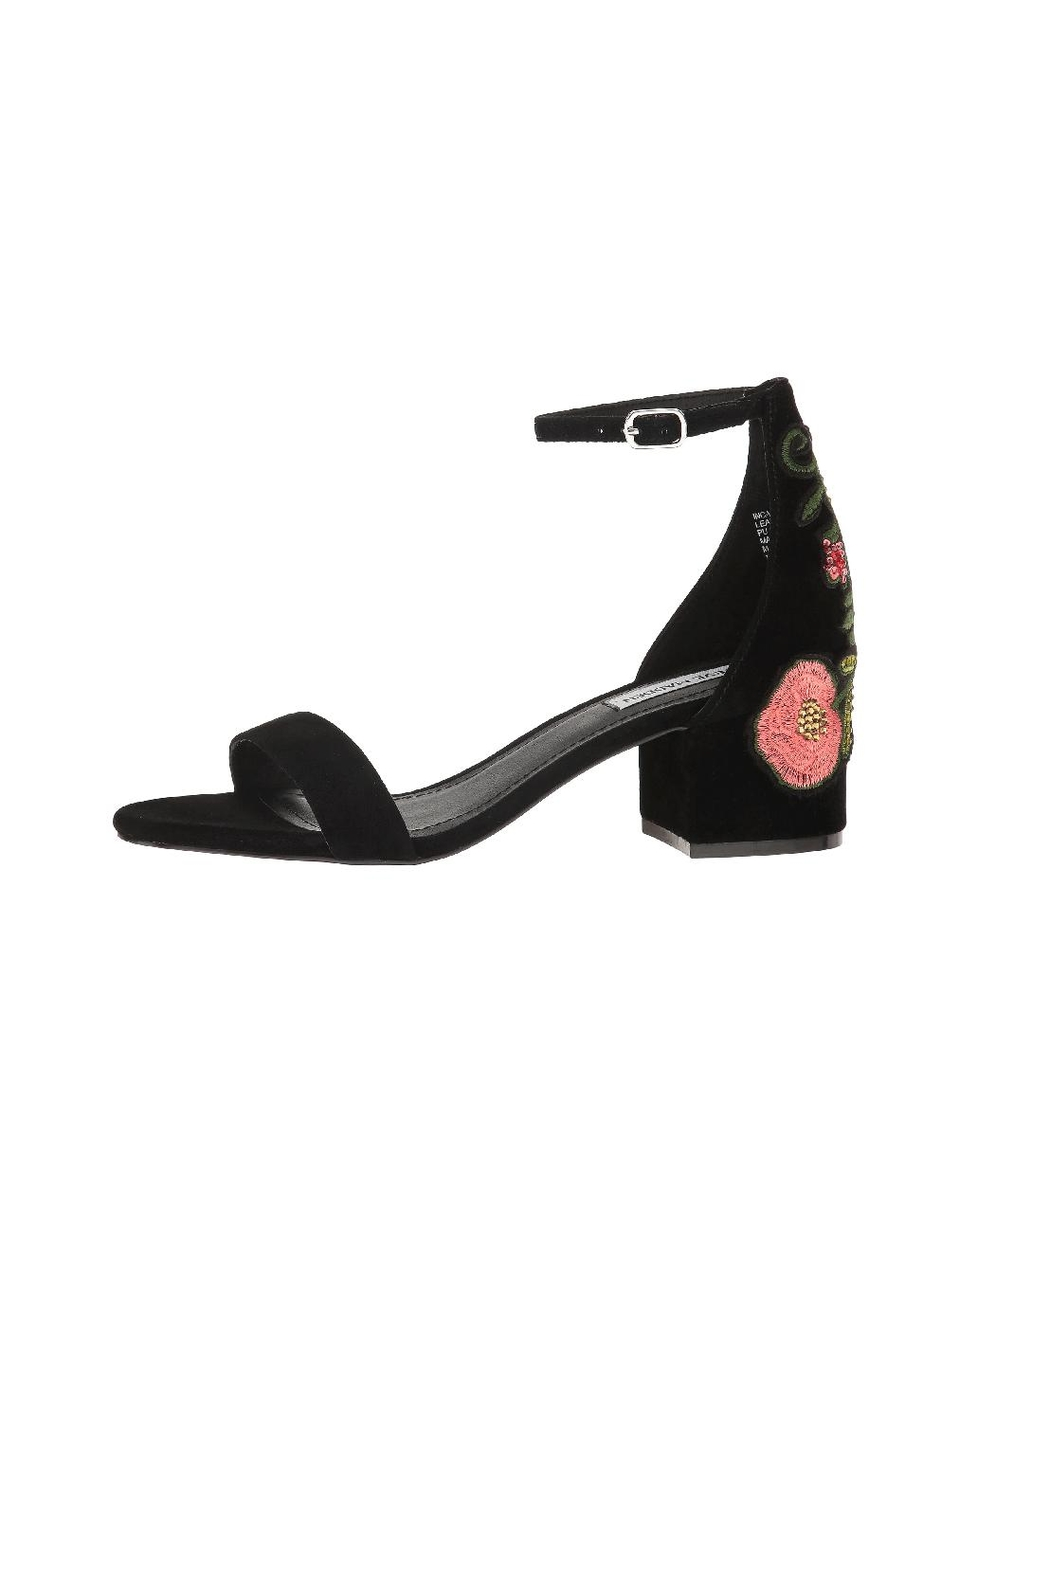 bc72bd8f228 Steve Madden Inca Embroidered Heel from New York by Head Over Heelz ...